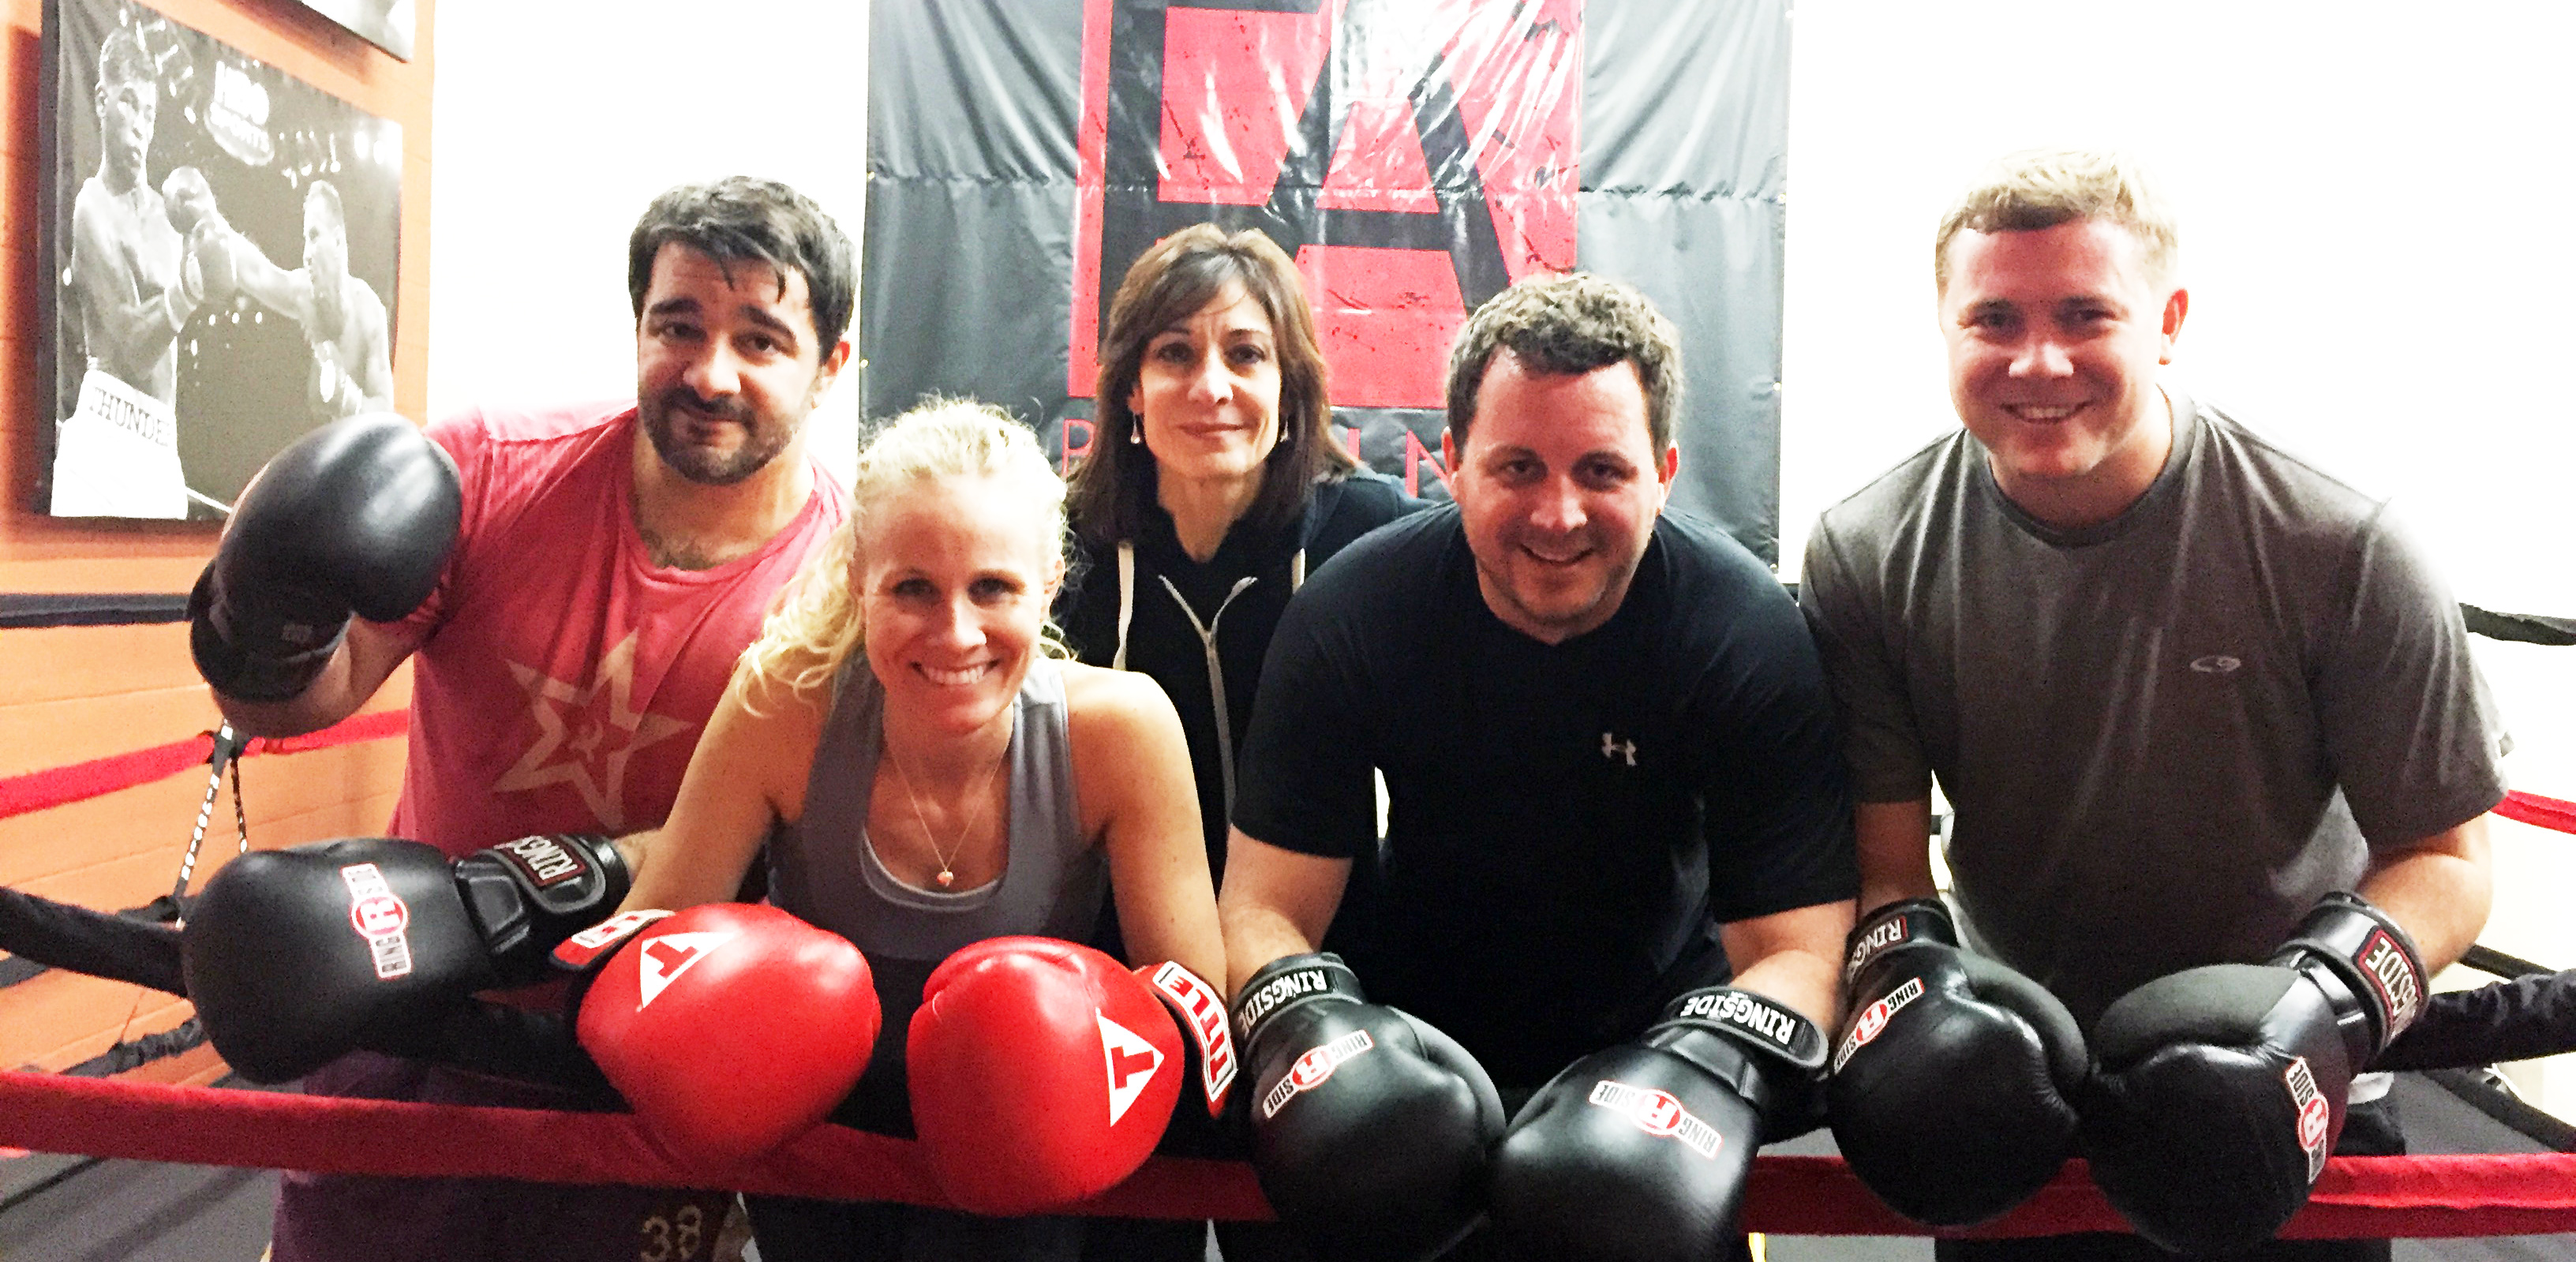 Personal Trainer - Boxing Training Boxing Classes Group Fitness Classes Boxing Gym